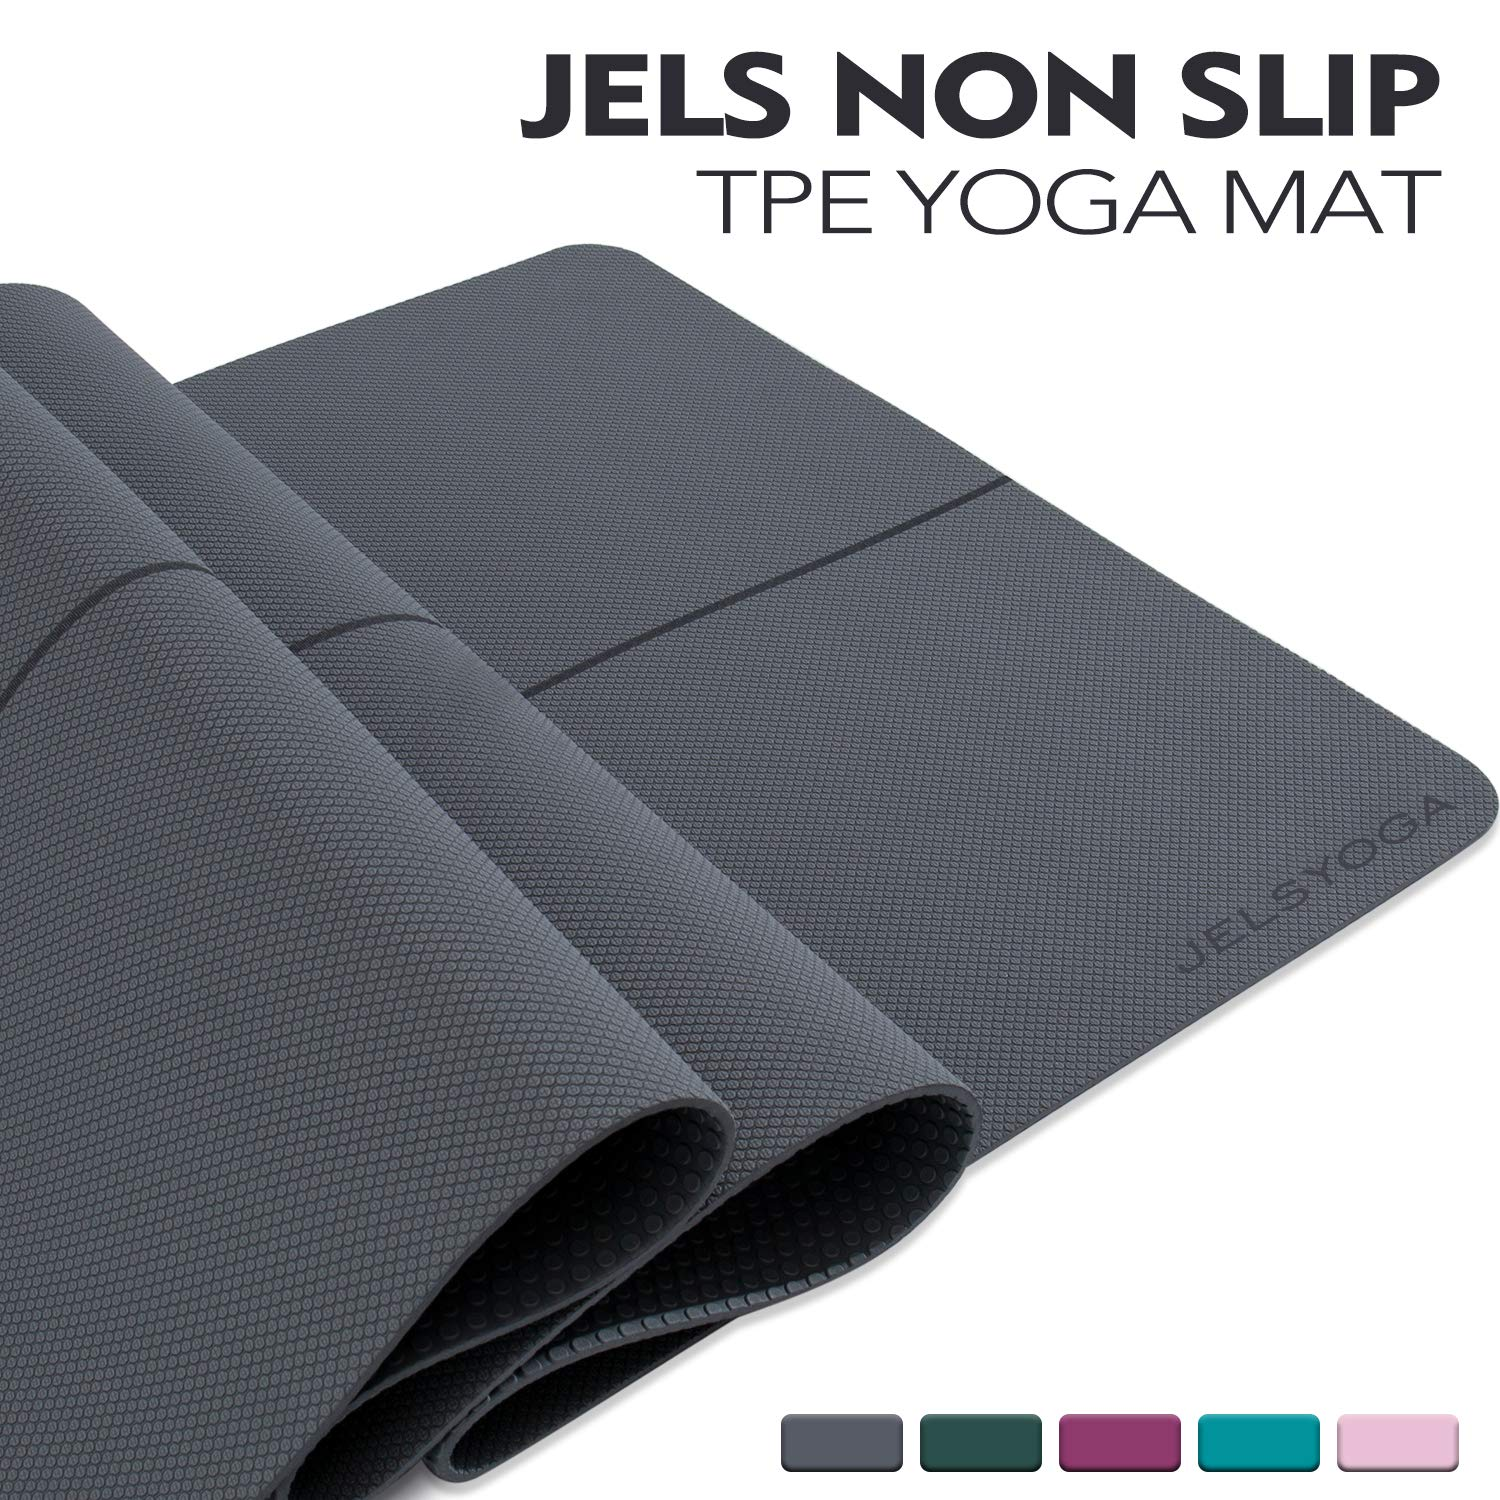 TENOL JELS Yoga Mat Non Slip,Eco Friendly SGS Certified TPE Yoga Mat,Extra Thick 1/4